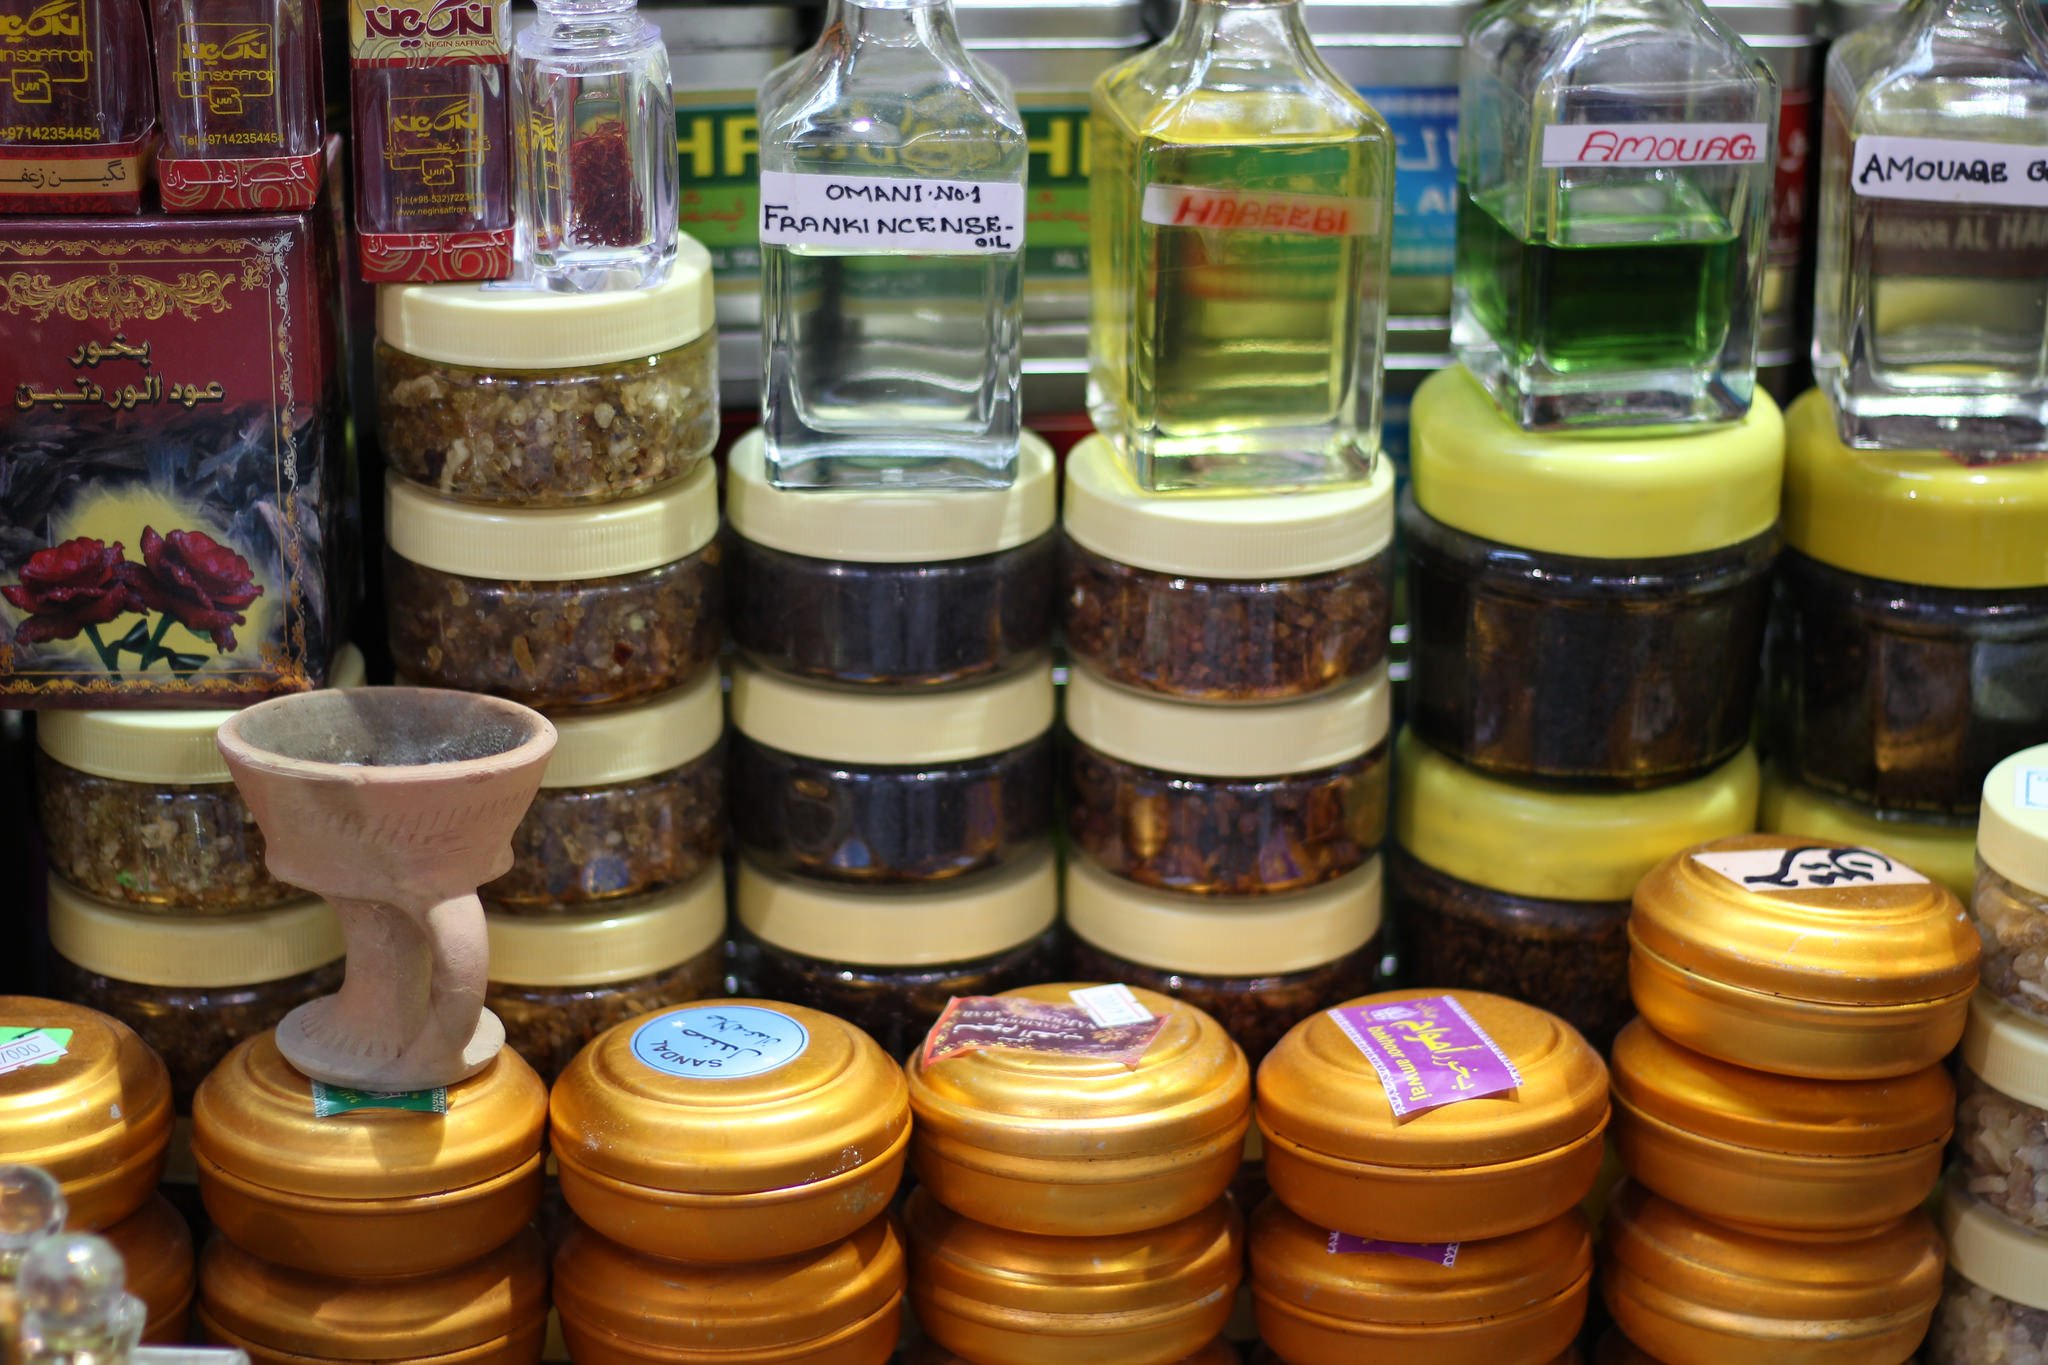 The Scent of Oman - the Story of Amouage Perfume